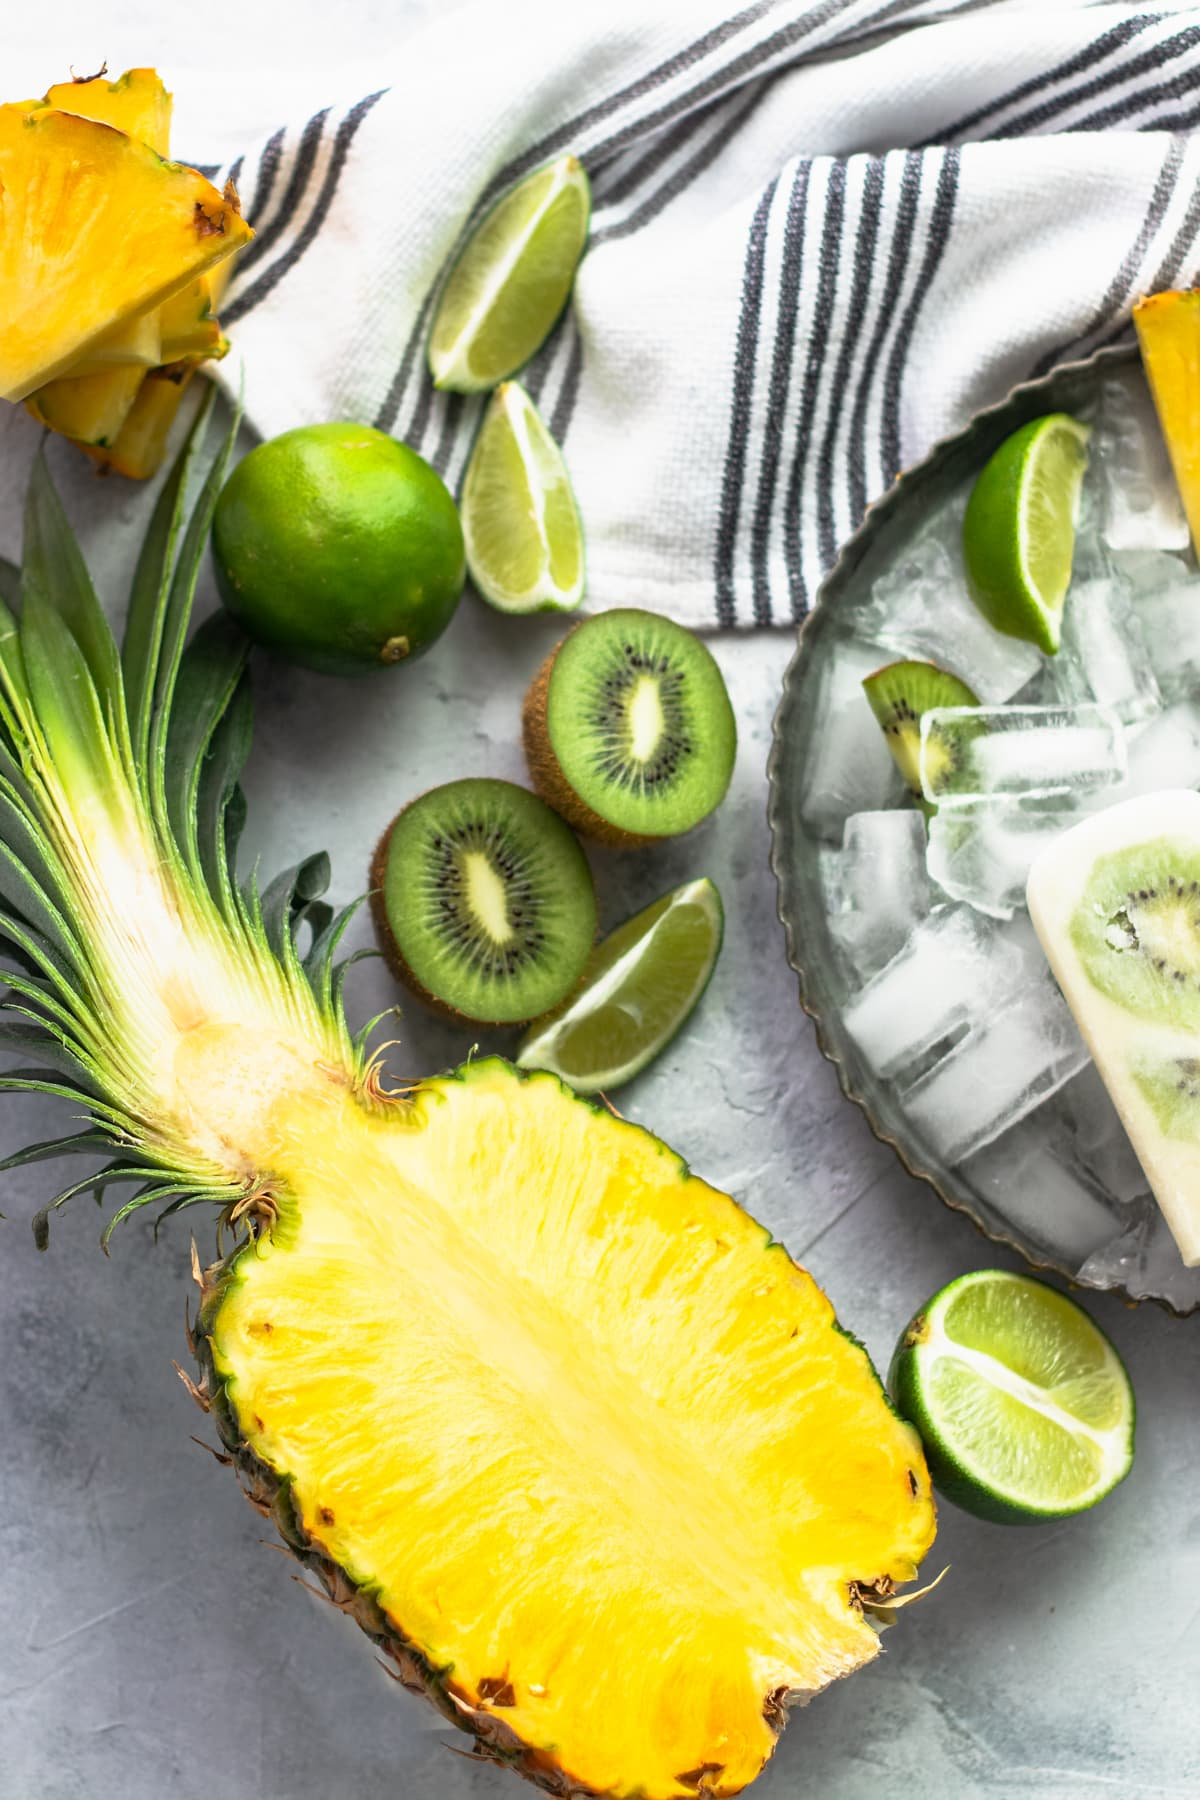 Whole 30 Tropical Popsicles Ingredients by top Houston lifestyle blogger Ashley Rose of Sugar & Cloth